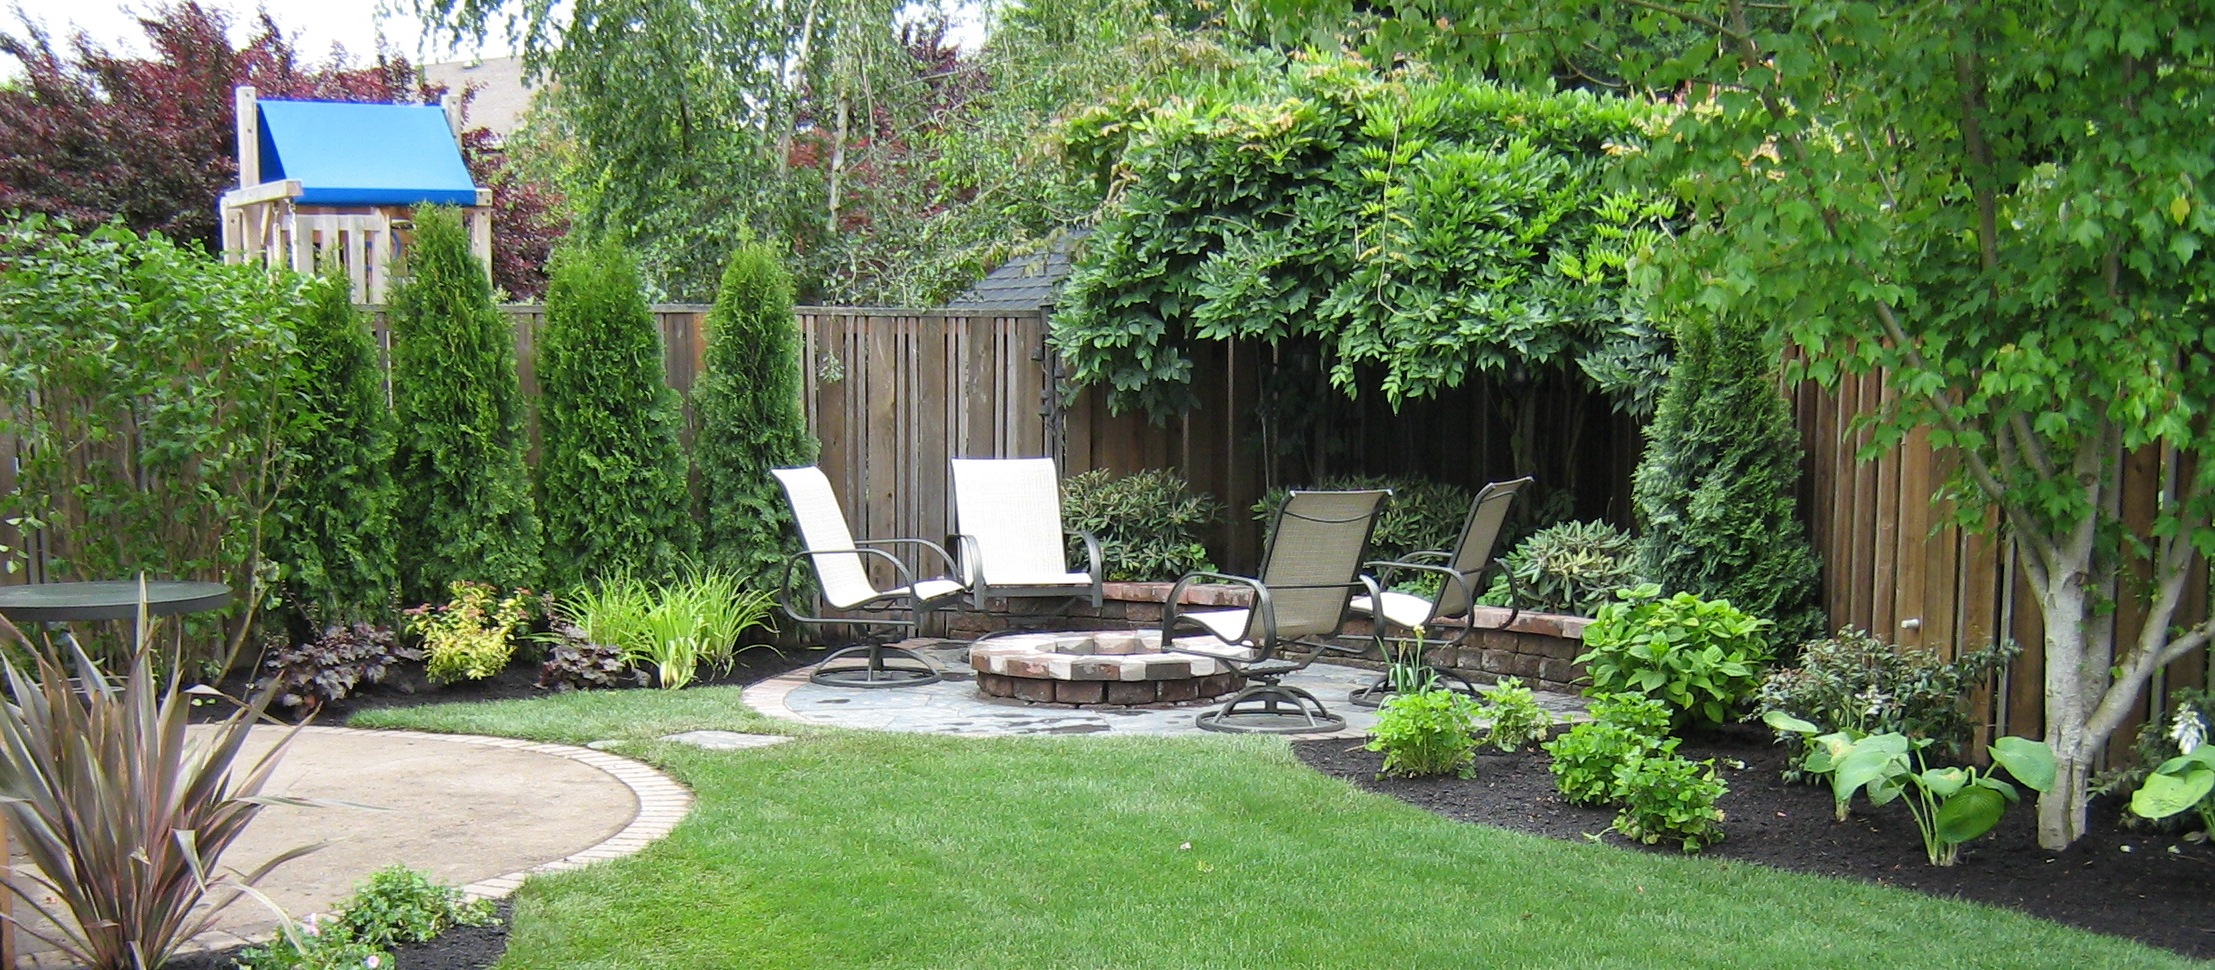 Backyard Landscaping Design Ideas backyard design how to create the ultimate backyard fort backyard landscaping design ideas charming cottages and Backyard Gardening Ideas Garden Design 13 634x475 20 Fascinating Backyard Garden Designs Backyard Deck Photos Backyard